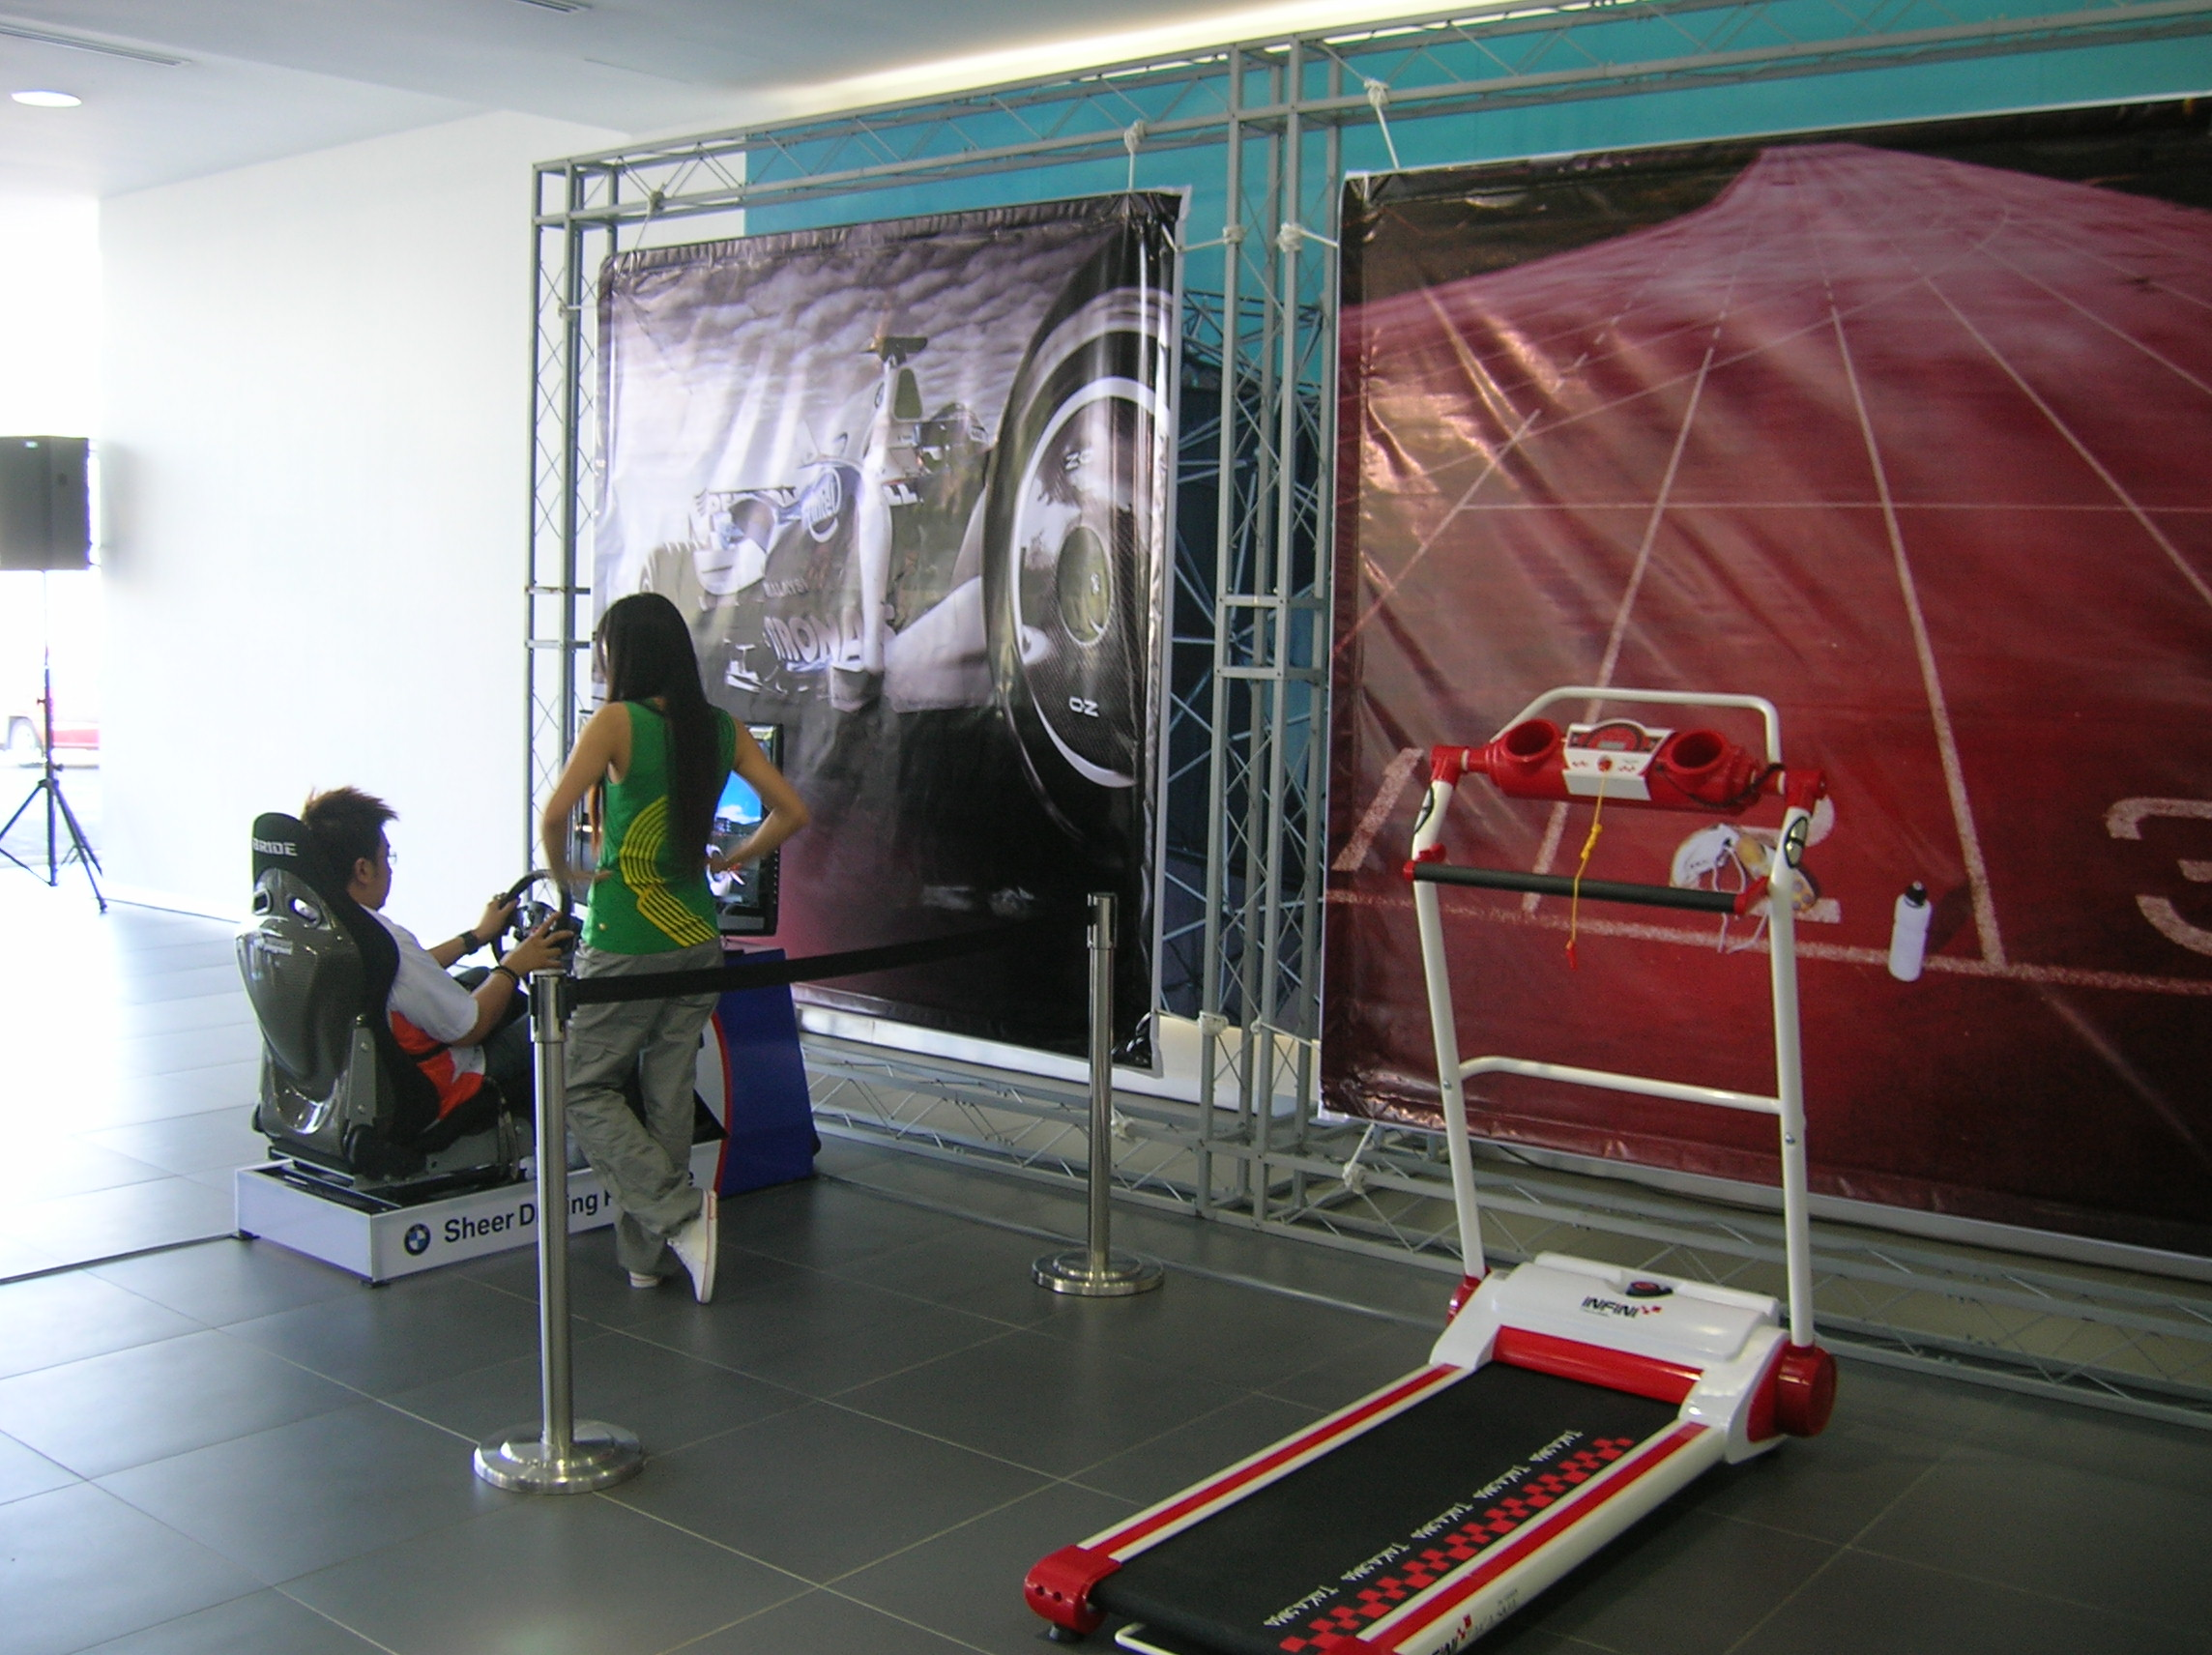 PS simulator and treadmill - you can win a weekend in a BMW here.